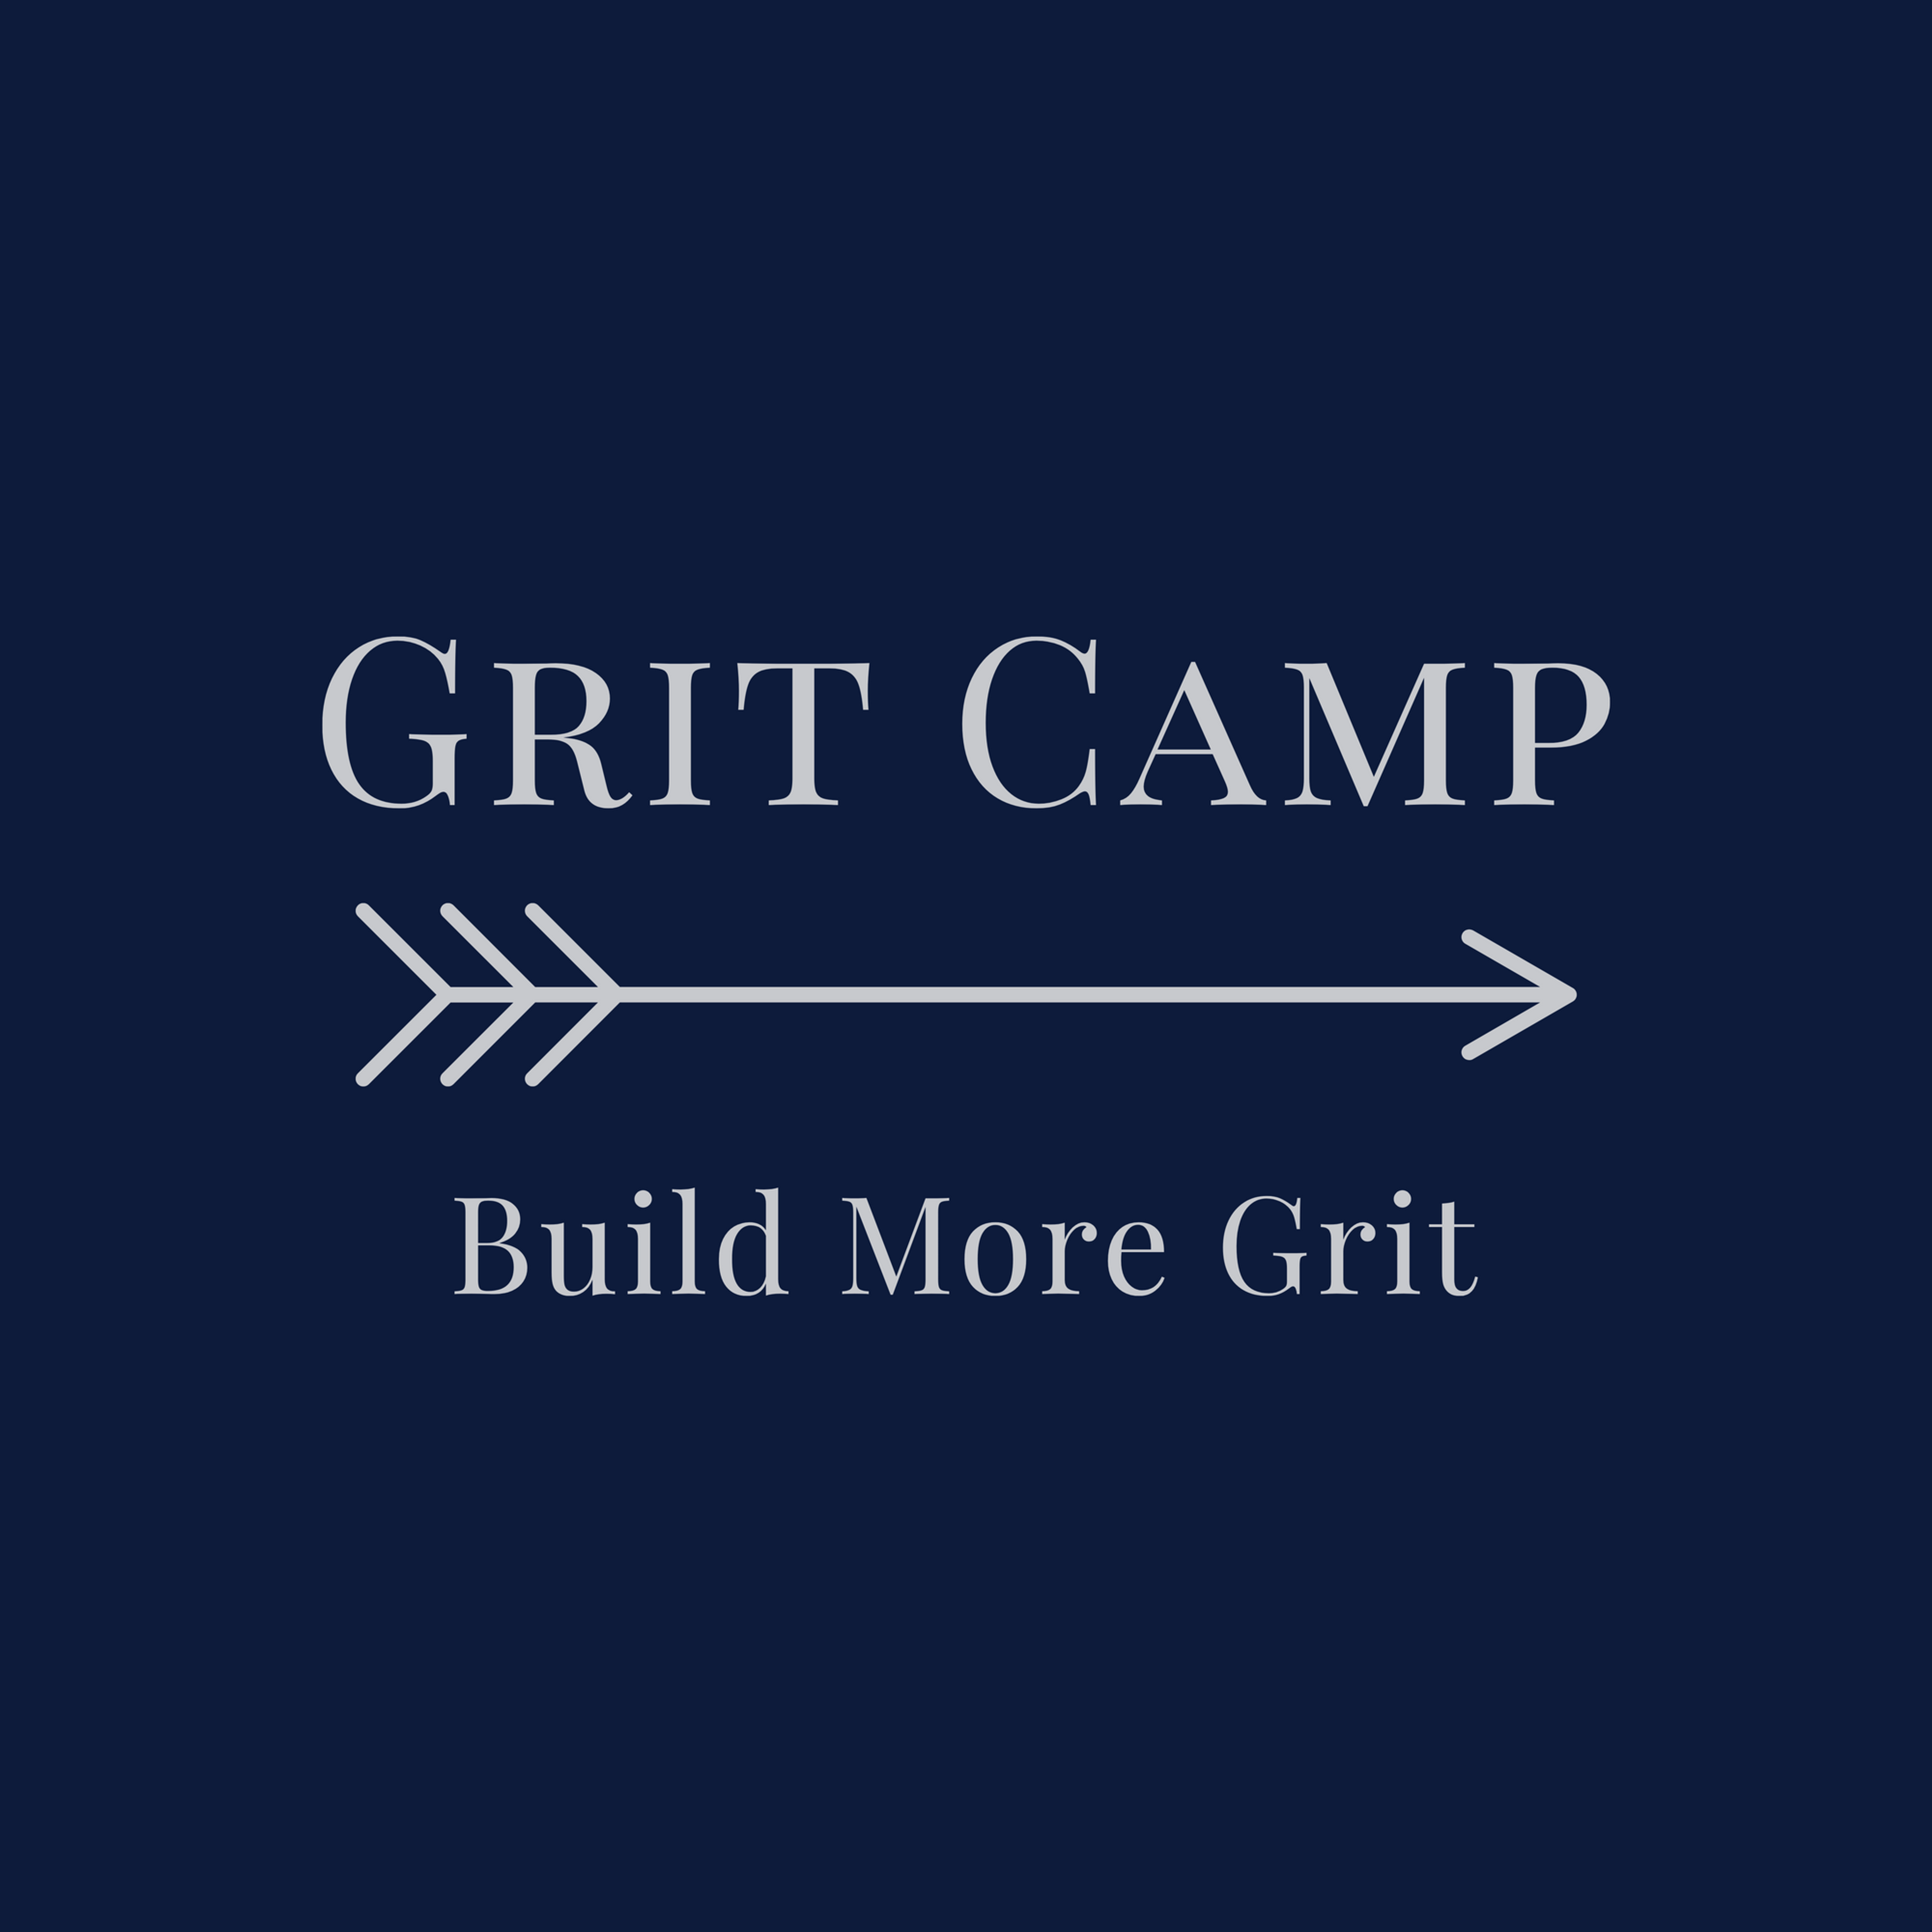 Grit Camp - June 7 to June 11